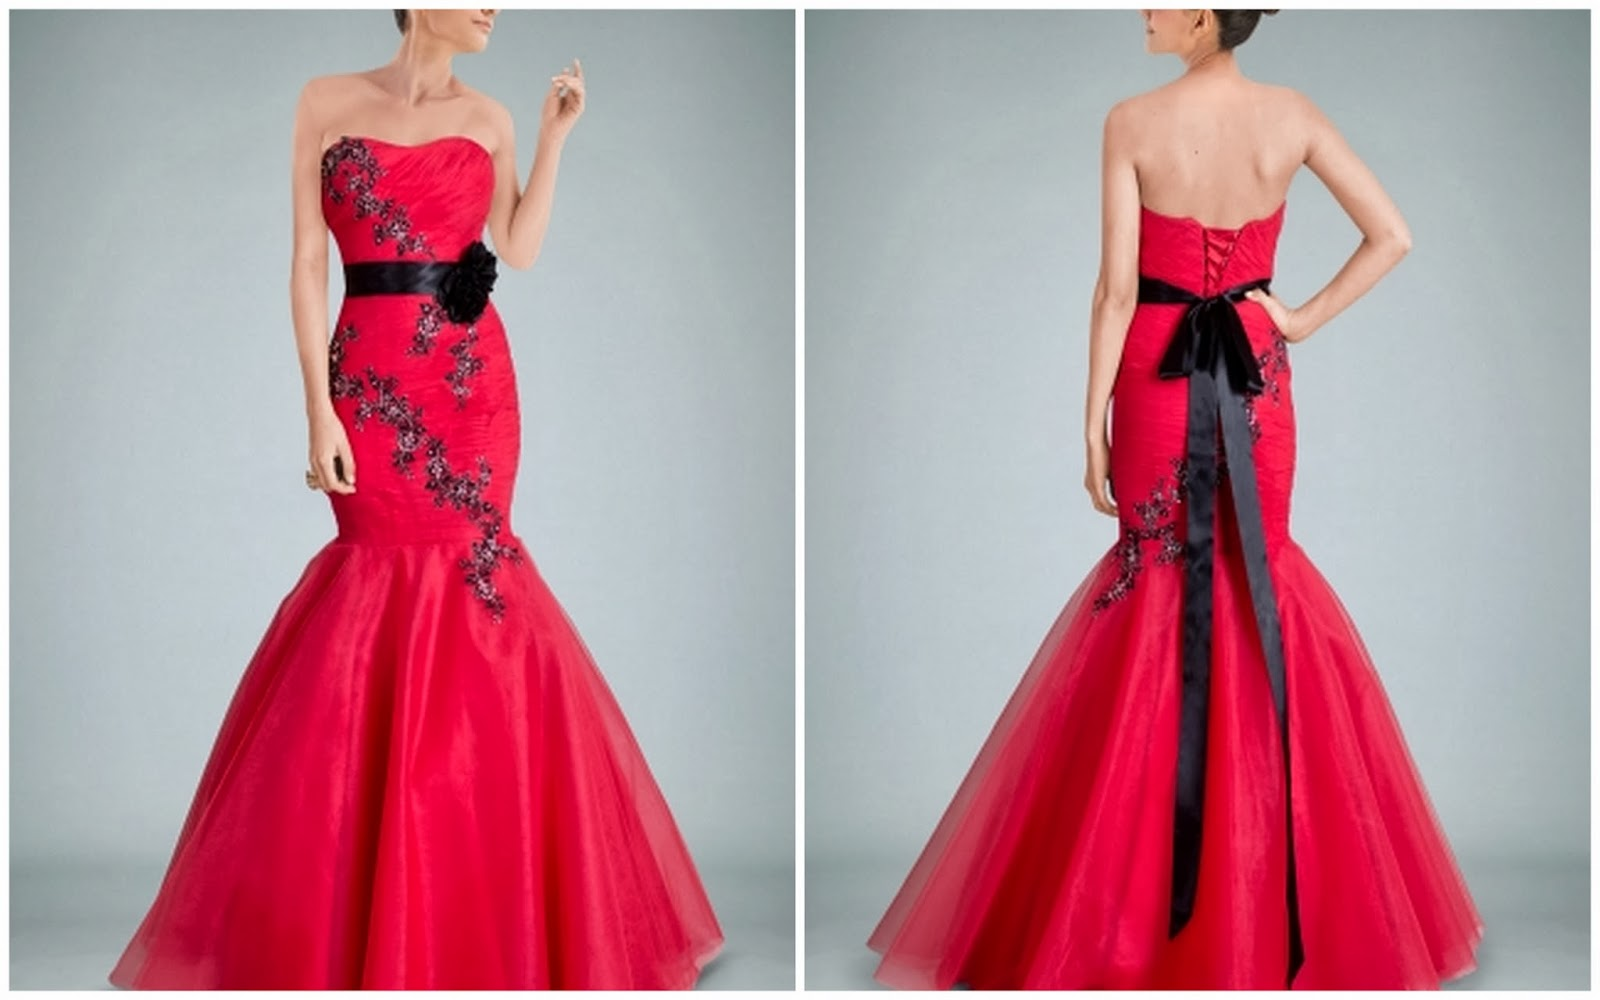 http://www.dressale.com/breathtaking-strapless-dipped-mermaid-dress-with-pleats-and-floral-sash-p-92807.html